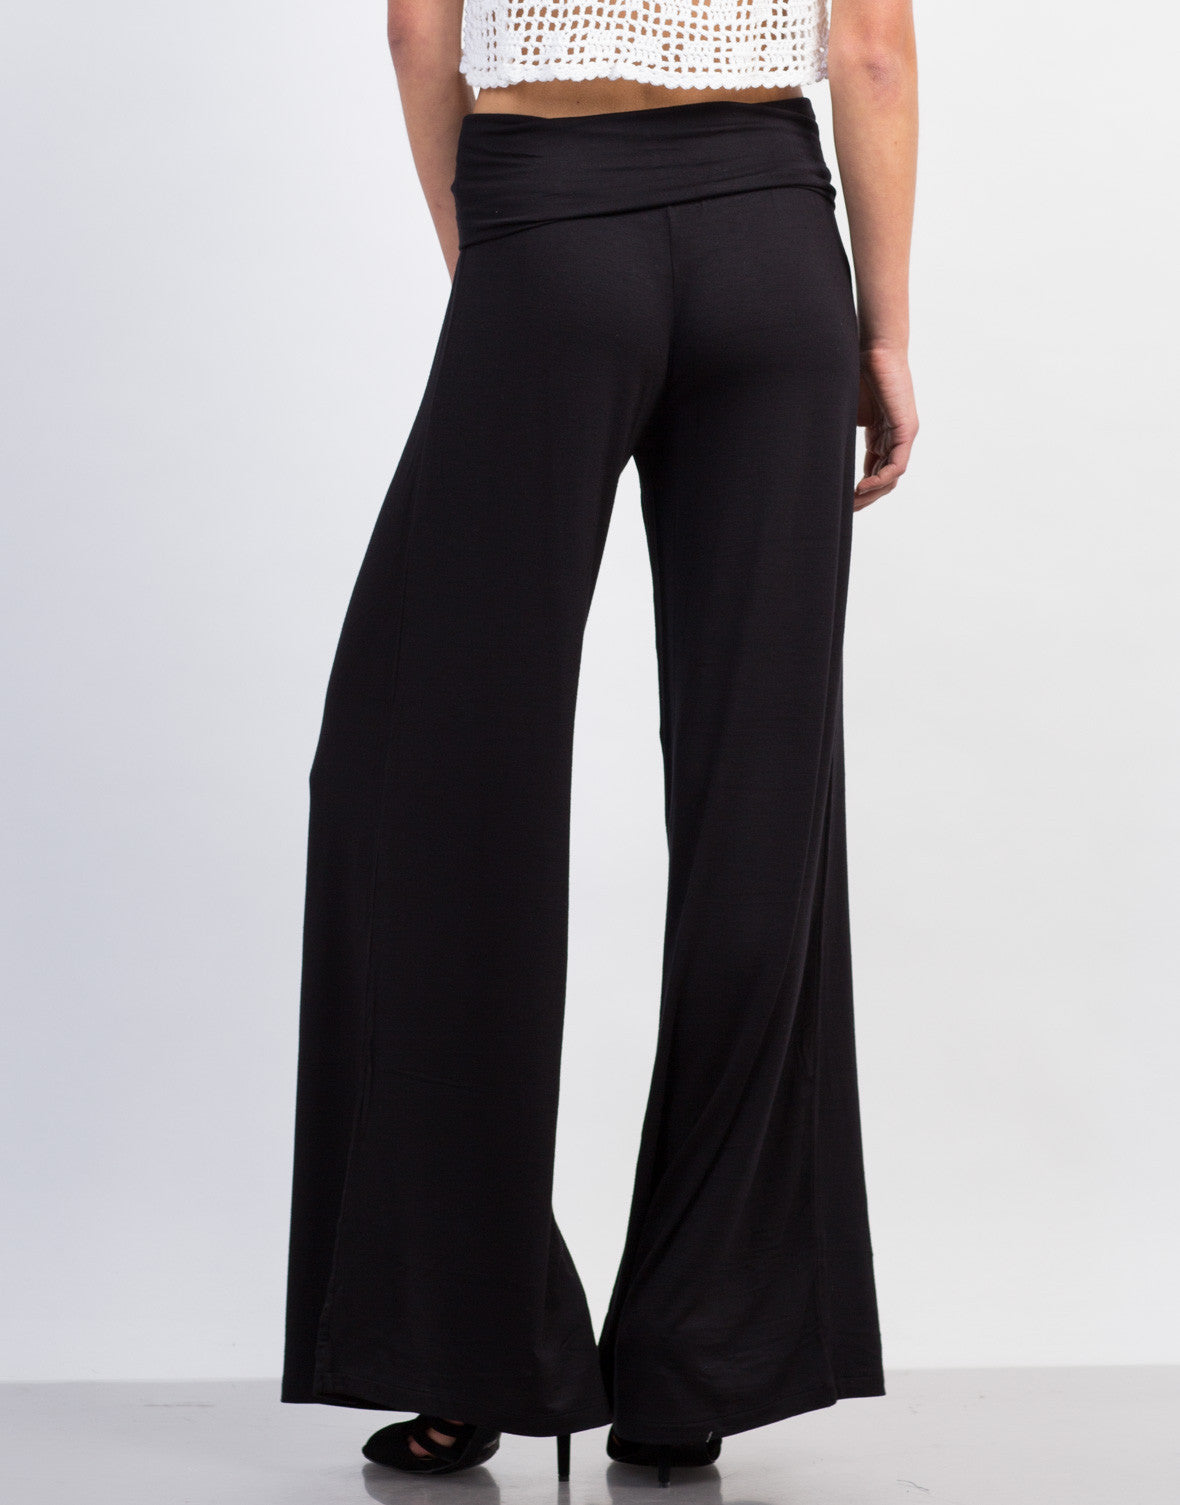 Back View of Wide Leg Palazzo Pants